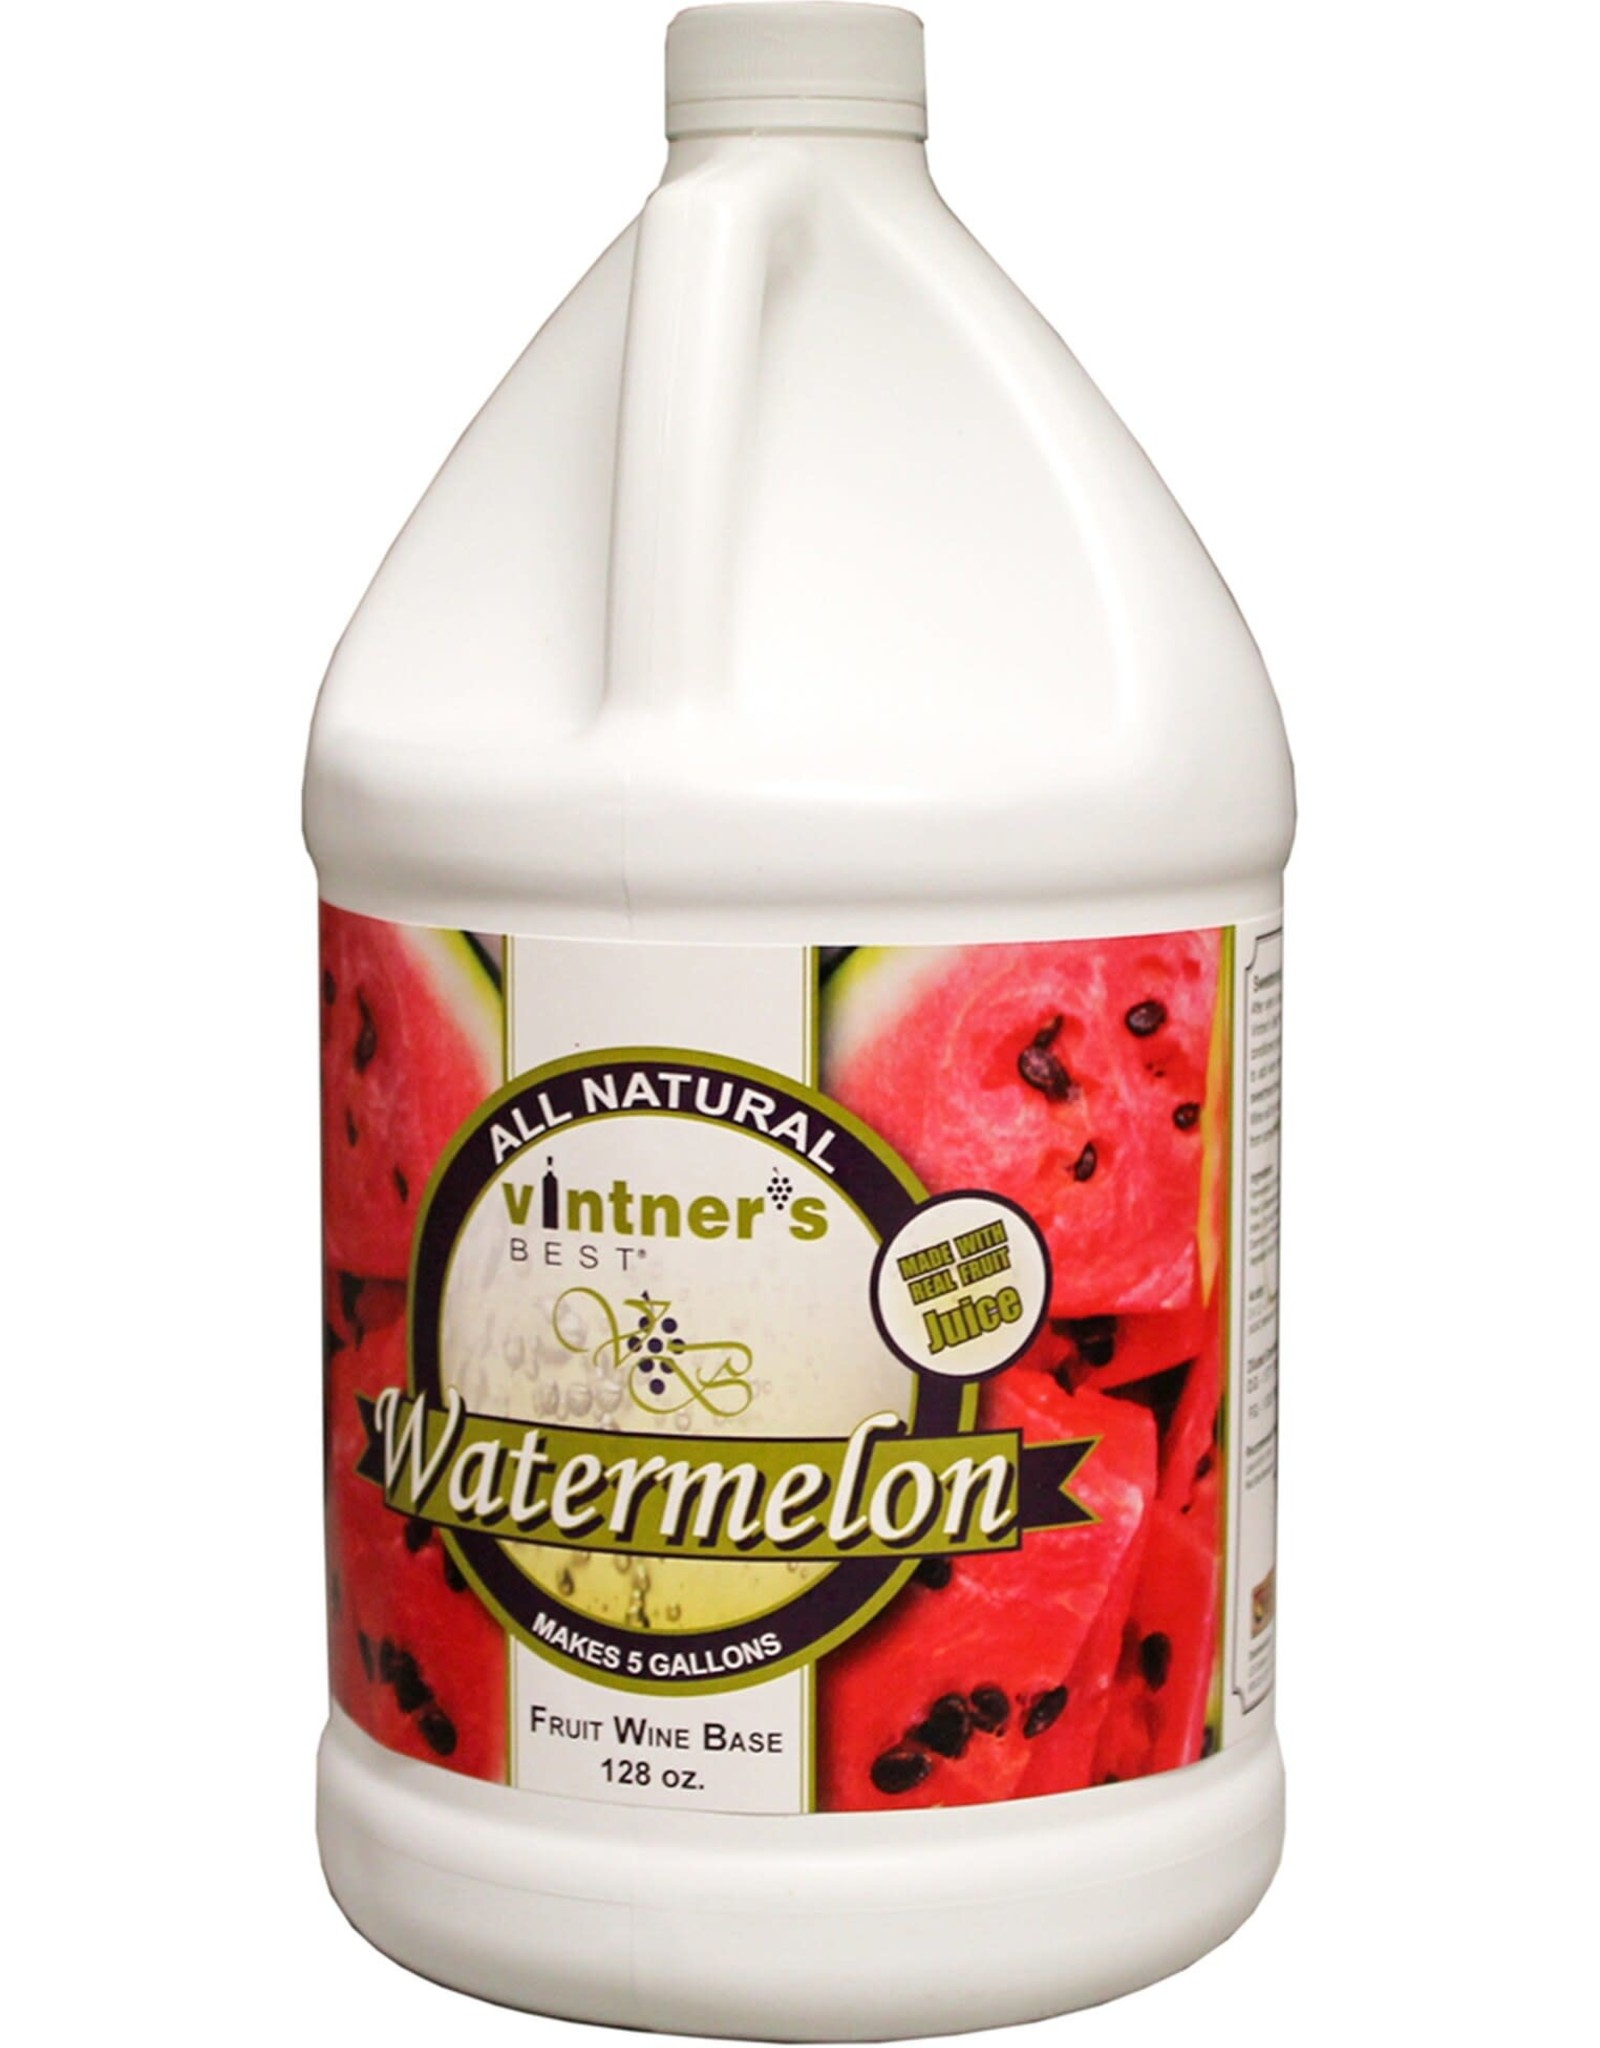 VINTNERS BEST WATERMELON Fruit Wine Base - 128 oz. Jug